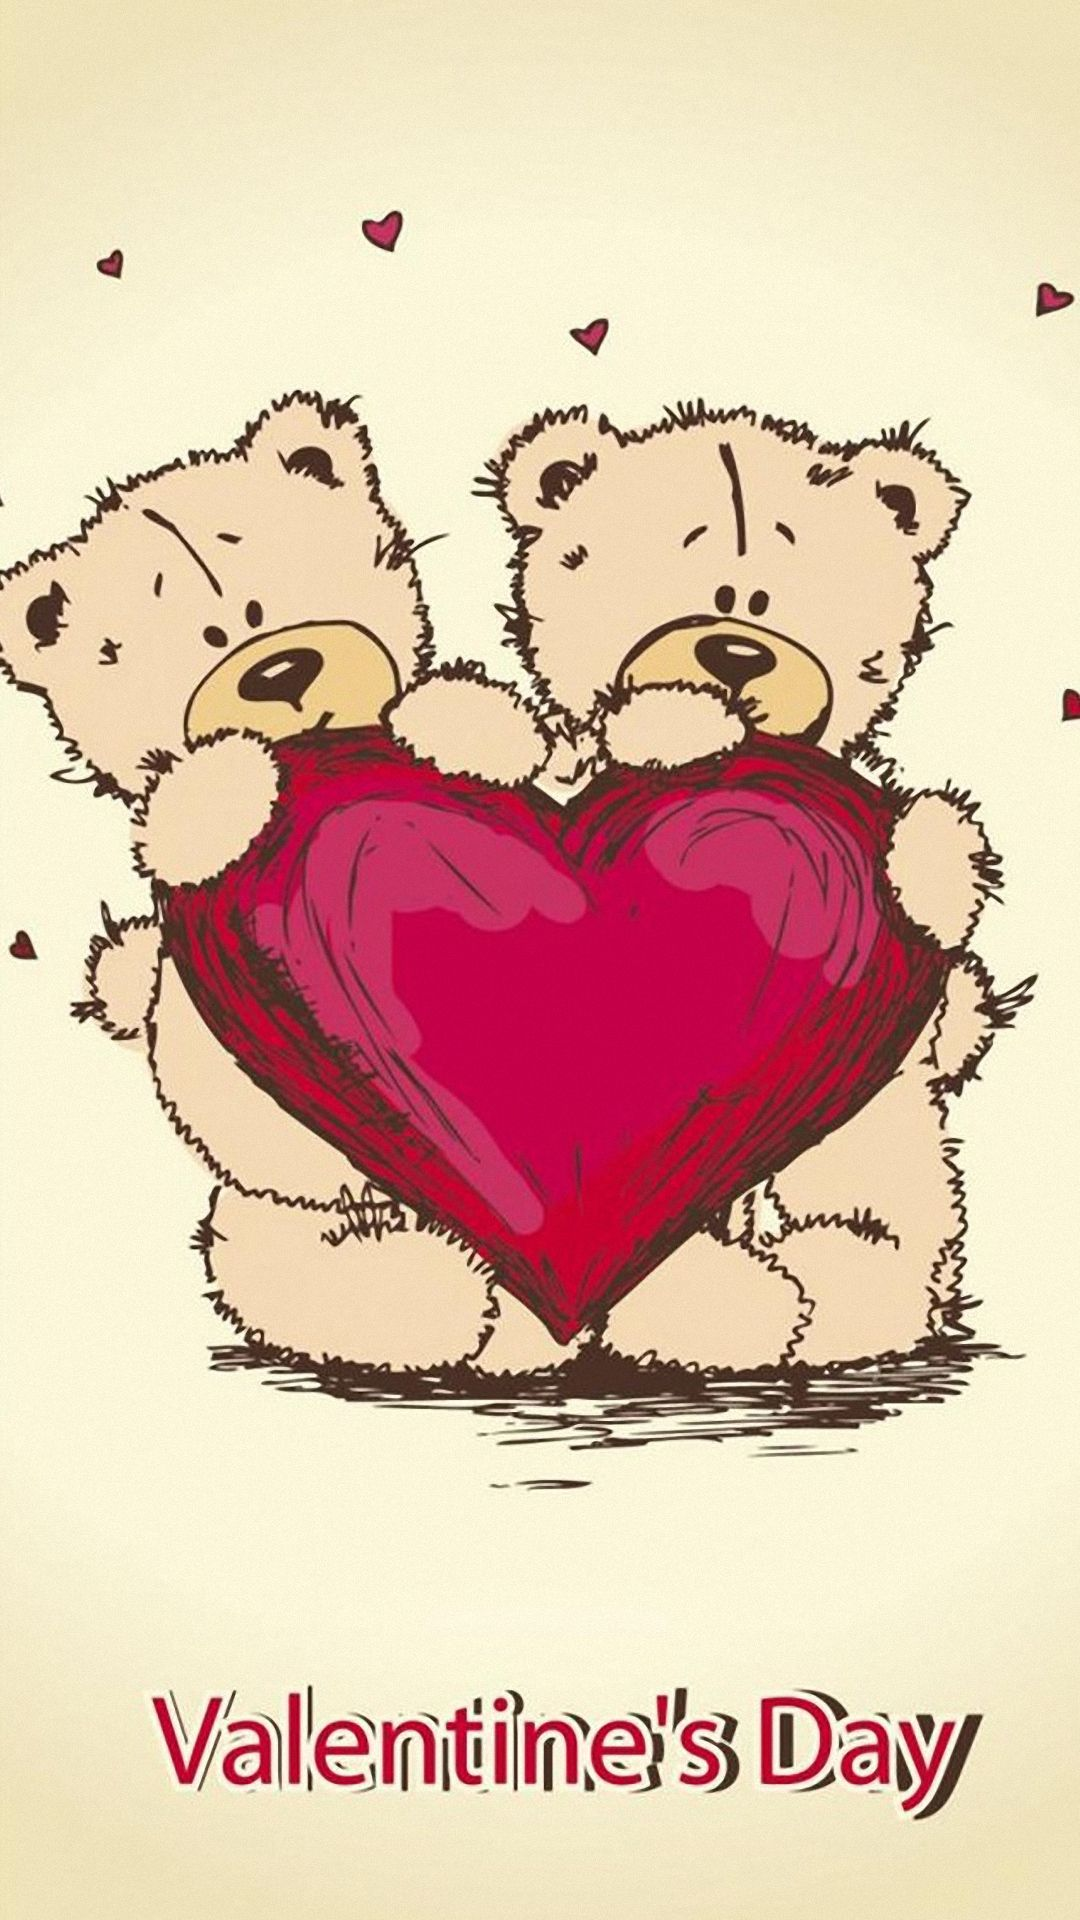 valentine's day teddy. happy teddy day! tap to see more teddy iphone